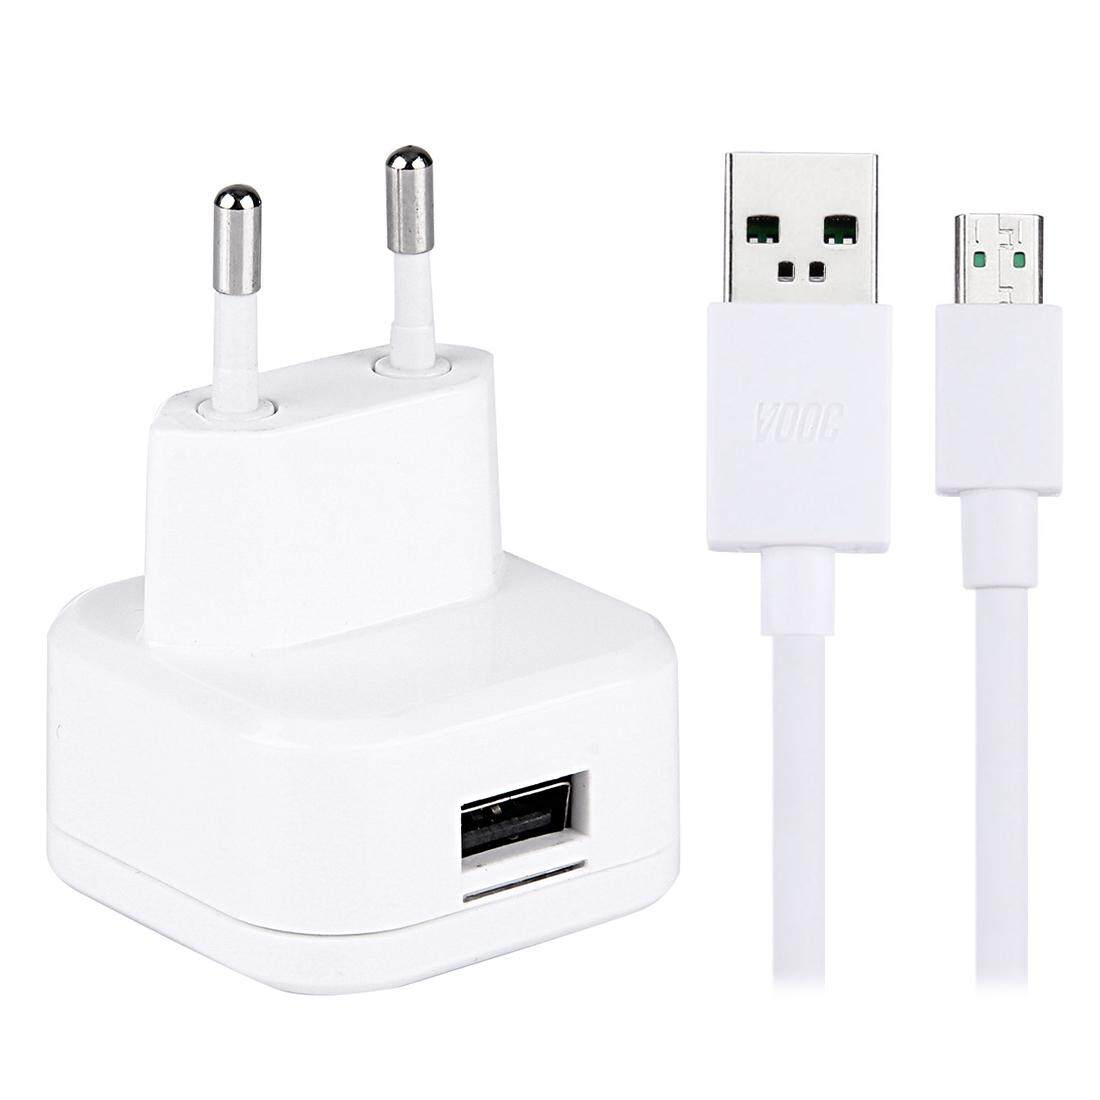 1-Port High Compatibility USB Charger with Original OPPO Fast Charging Micro USB Cable, For OPPO R9 Plus / R7 Plus / N3 / R5 / U3 / R7S Phone, EU Plugand#160;(White) - intl